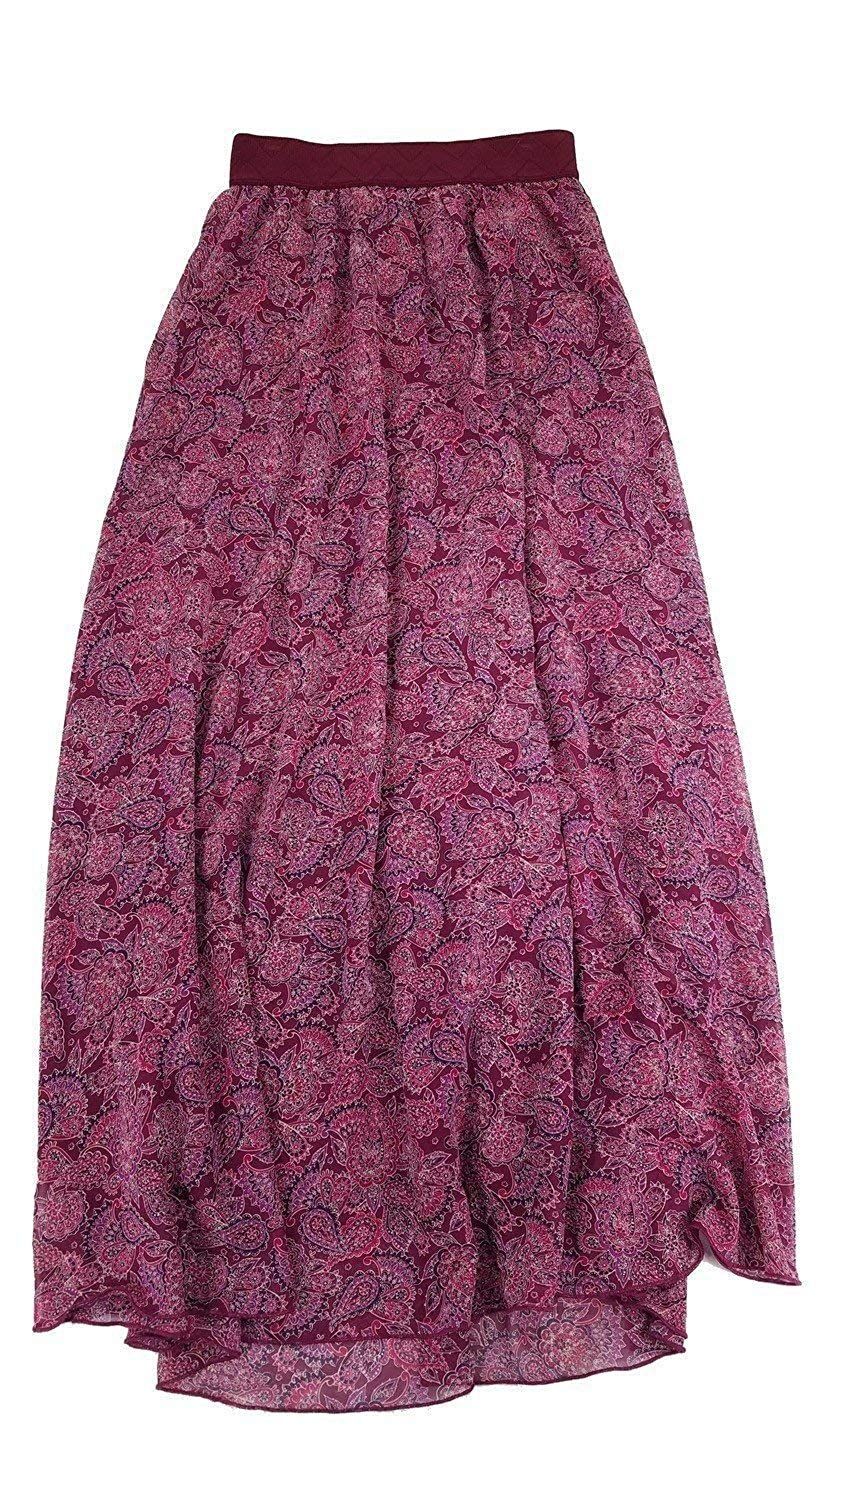 913137a9fcdf2c Lularoe Lucy Paisley XX-Small (XXS) Floor Length Women's Skirt fits Sizes  00-0 at Amazon Women's Clothing store: